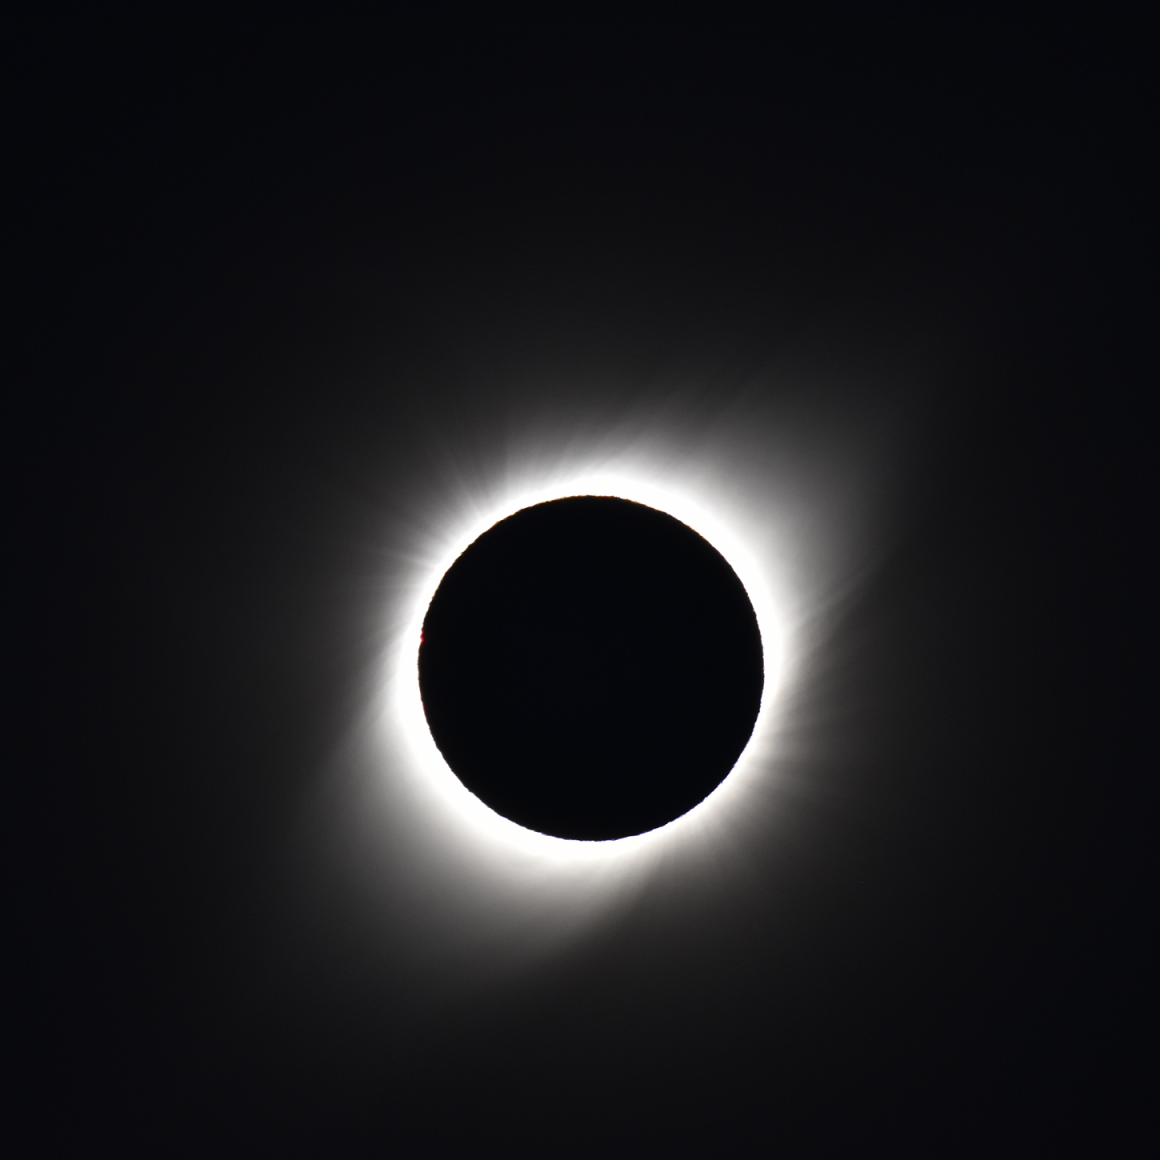 A photo of the total eclipse in Chile